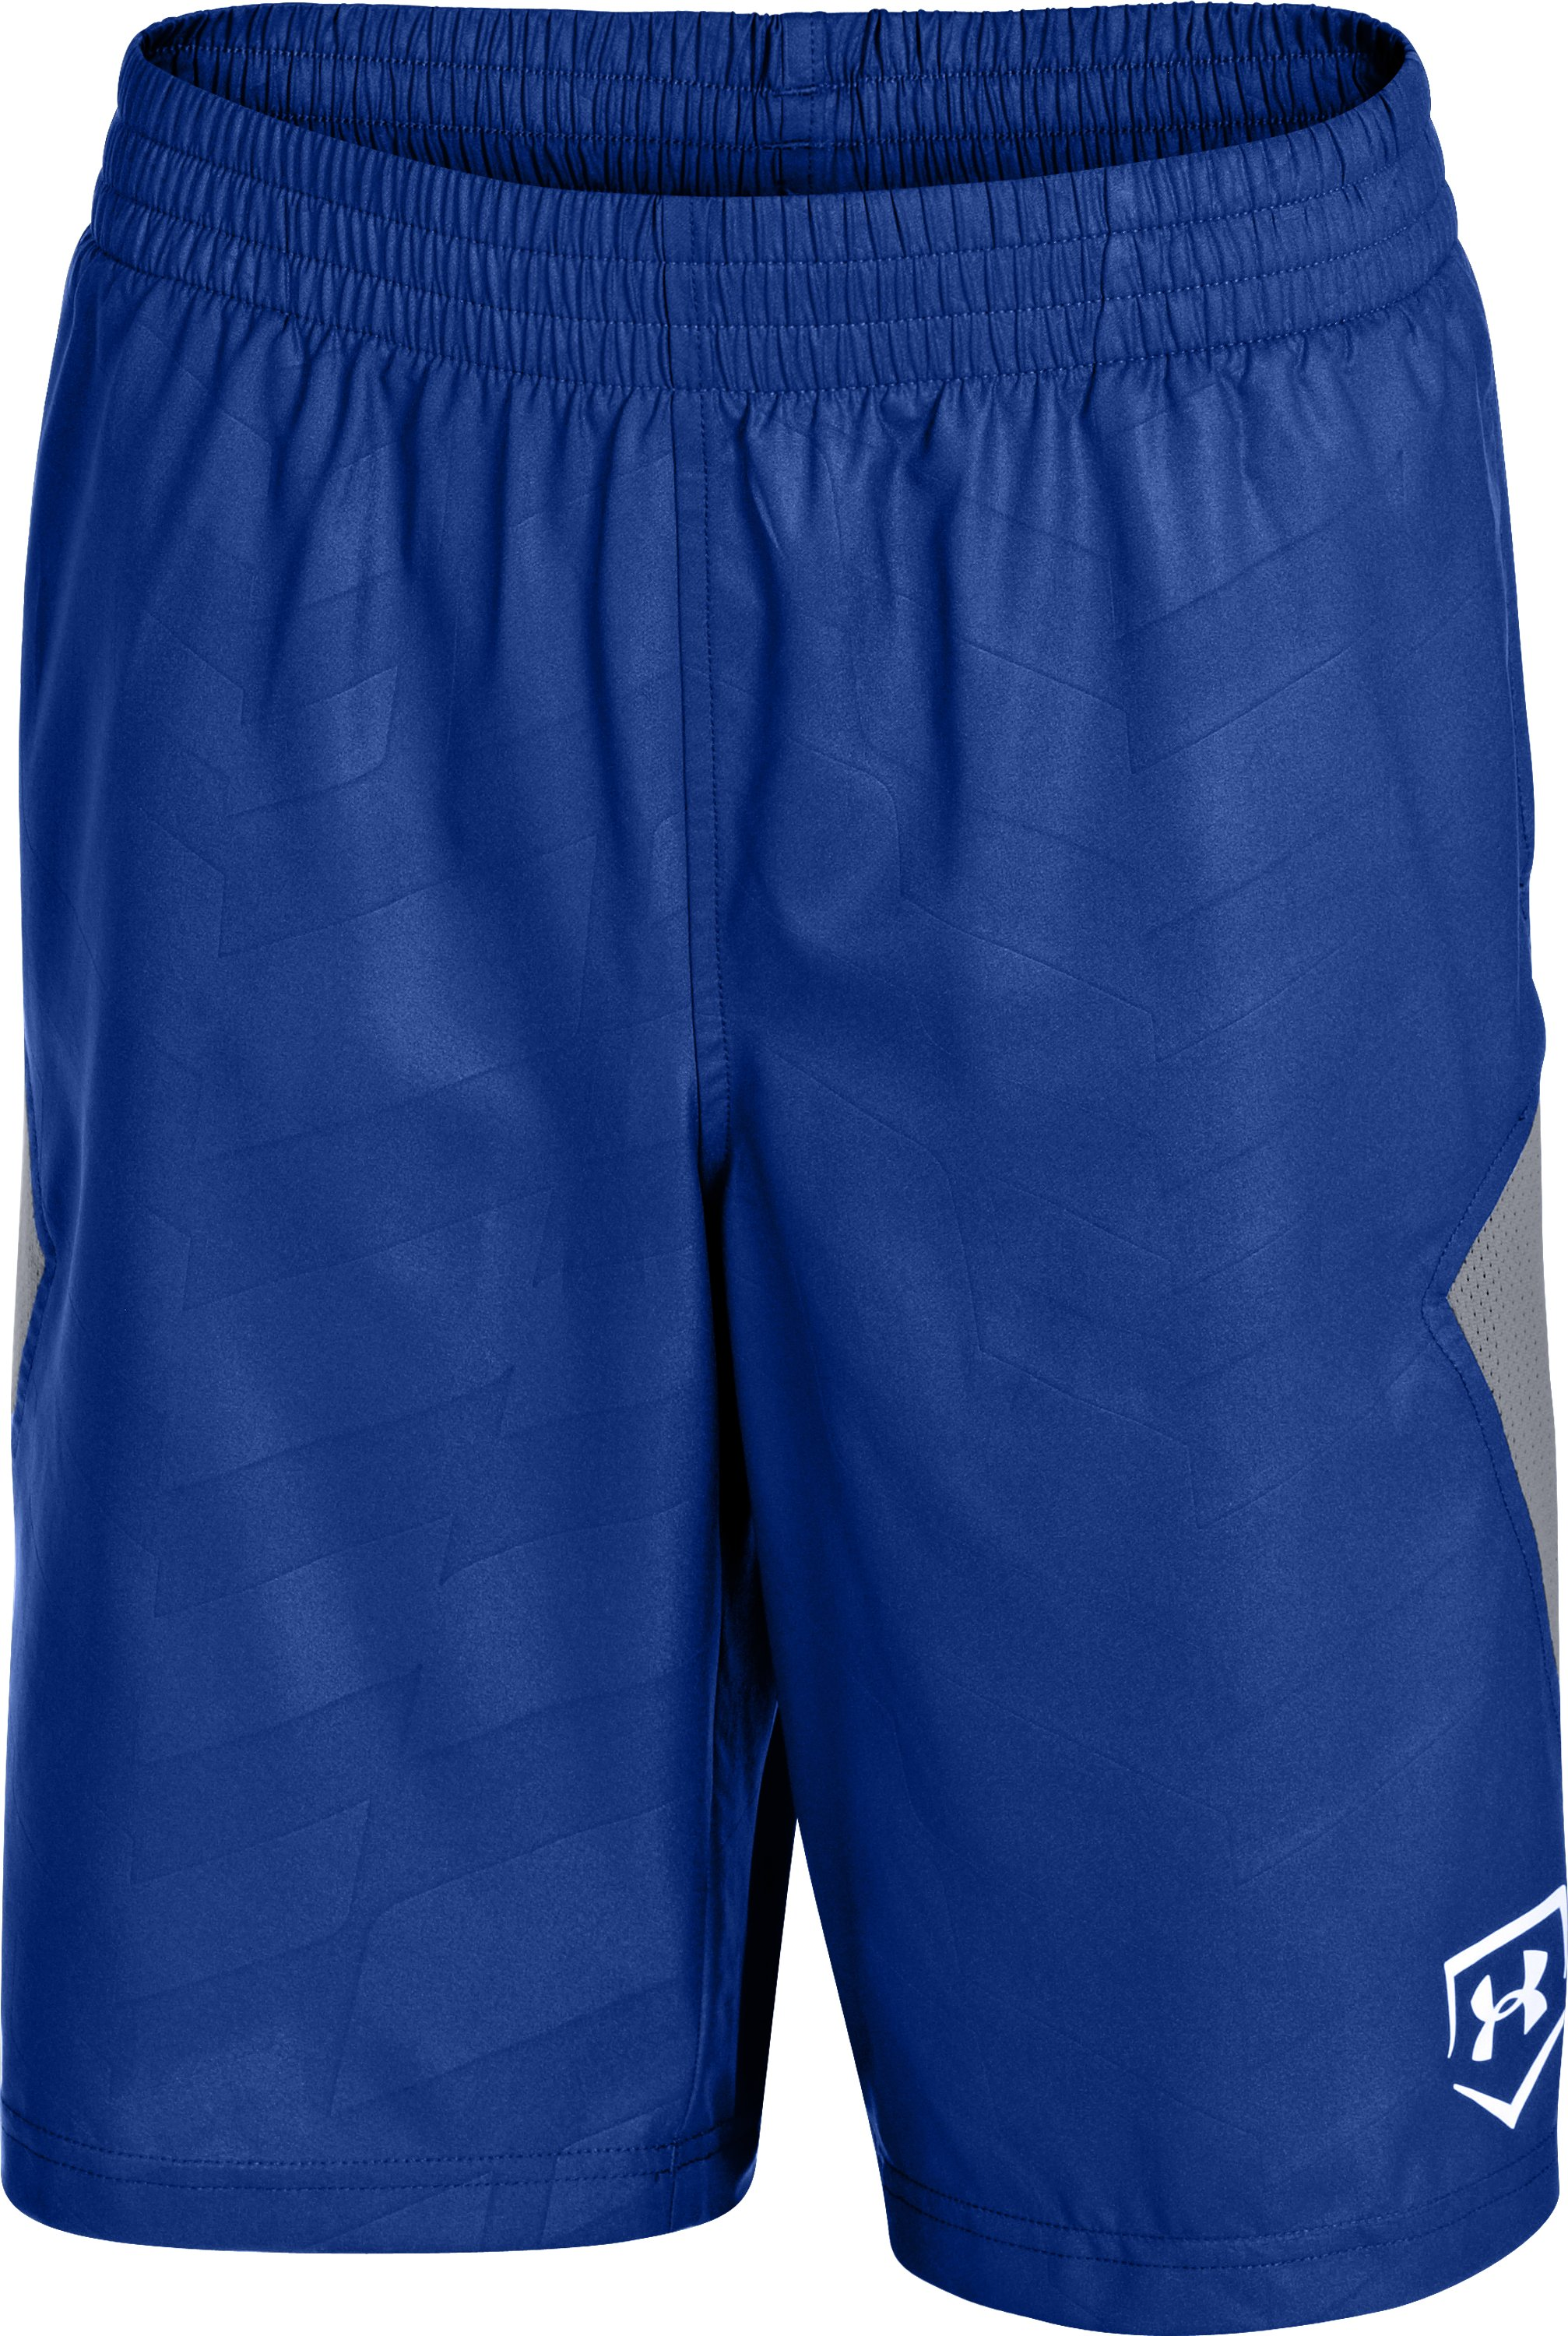 Boys' UA CTG Baseball Training Shorts, Royal